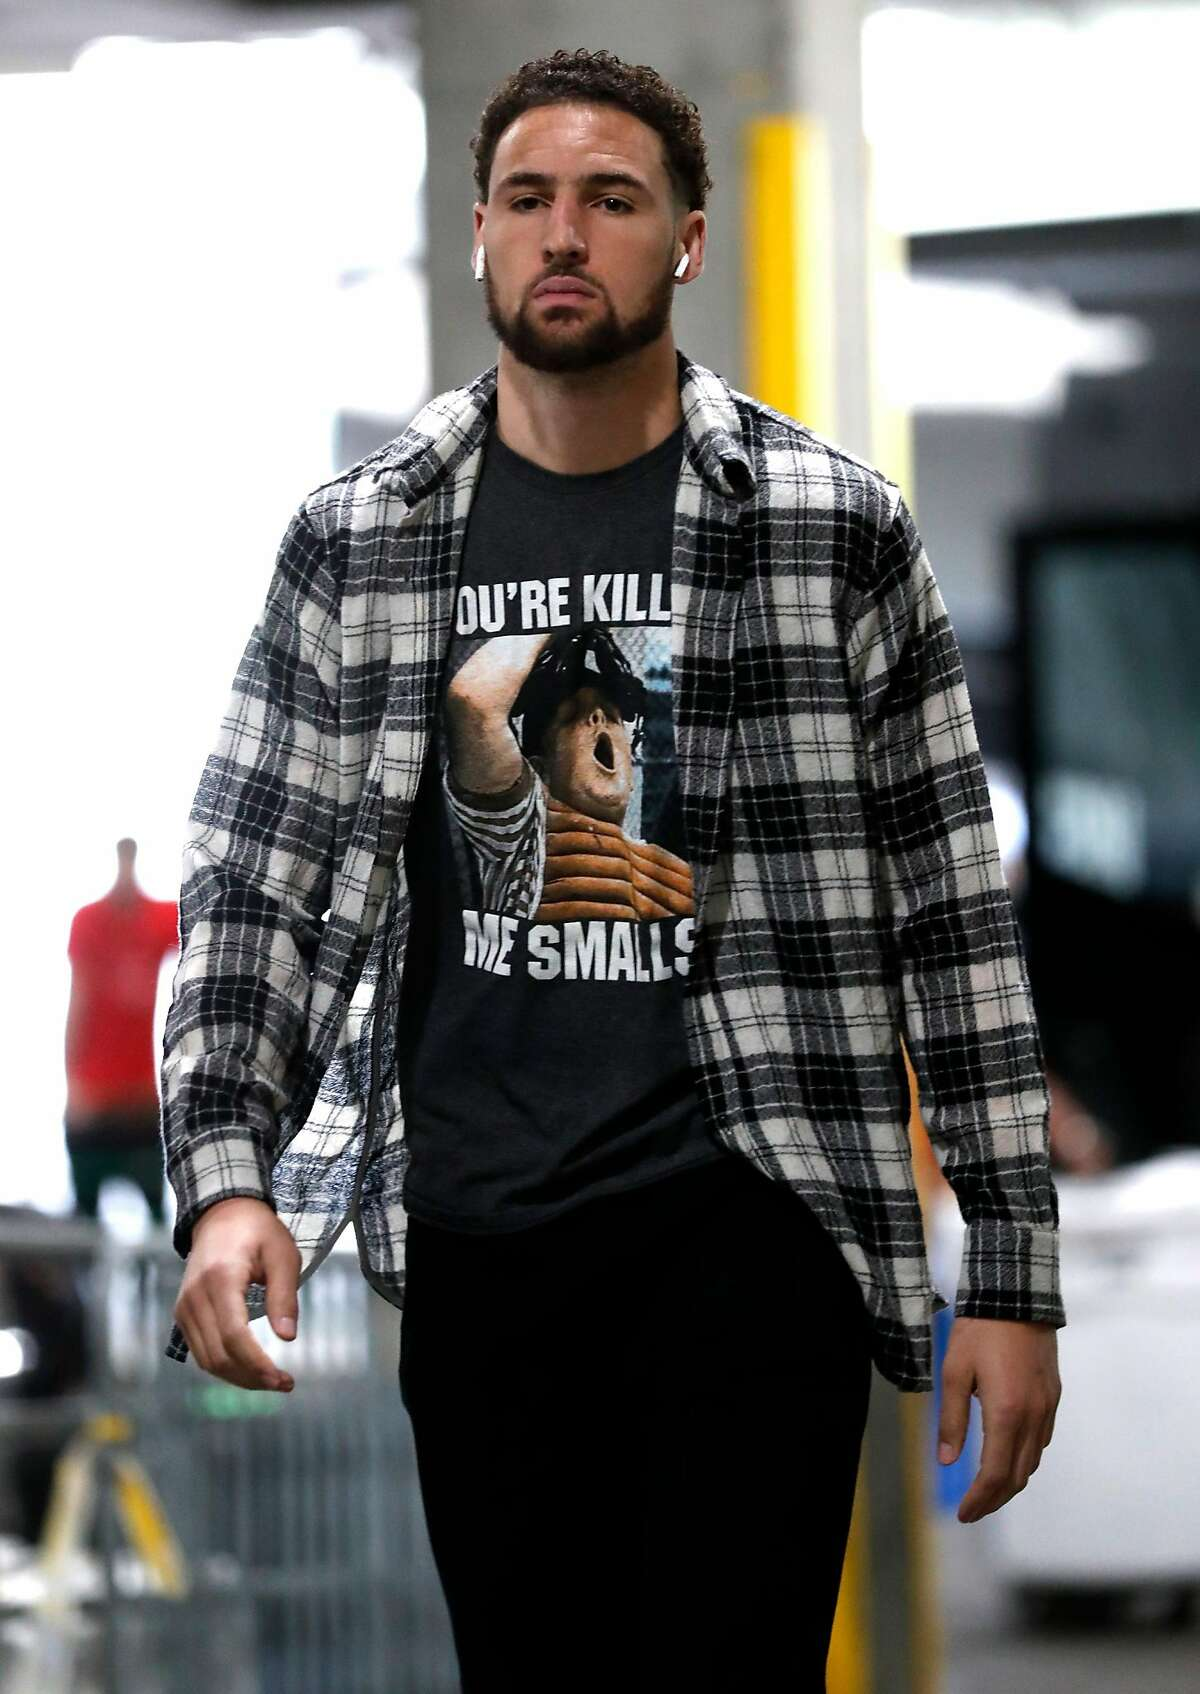 Golden State Warriors' Klay Thompson arrives before Game 3 of the NBA Western Conference Finals at Moda Center in Portland, Oregon on Saturday, May 18, 2019.